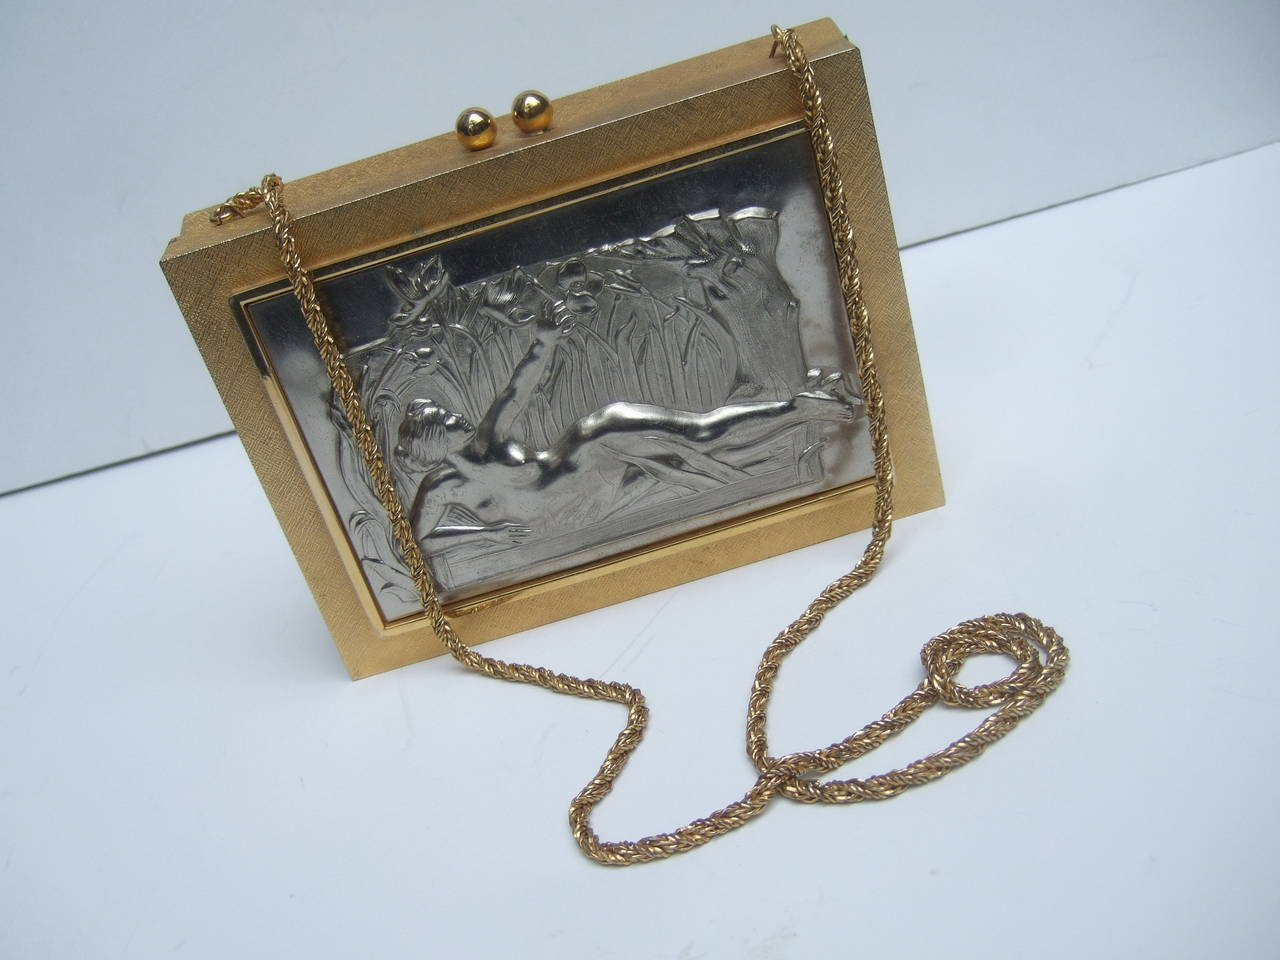 Exquisite Italian Gilt Metal Evening Bag Designed by Harry Rosenfeld For Sale 3